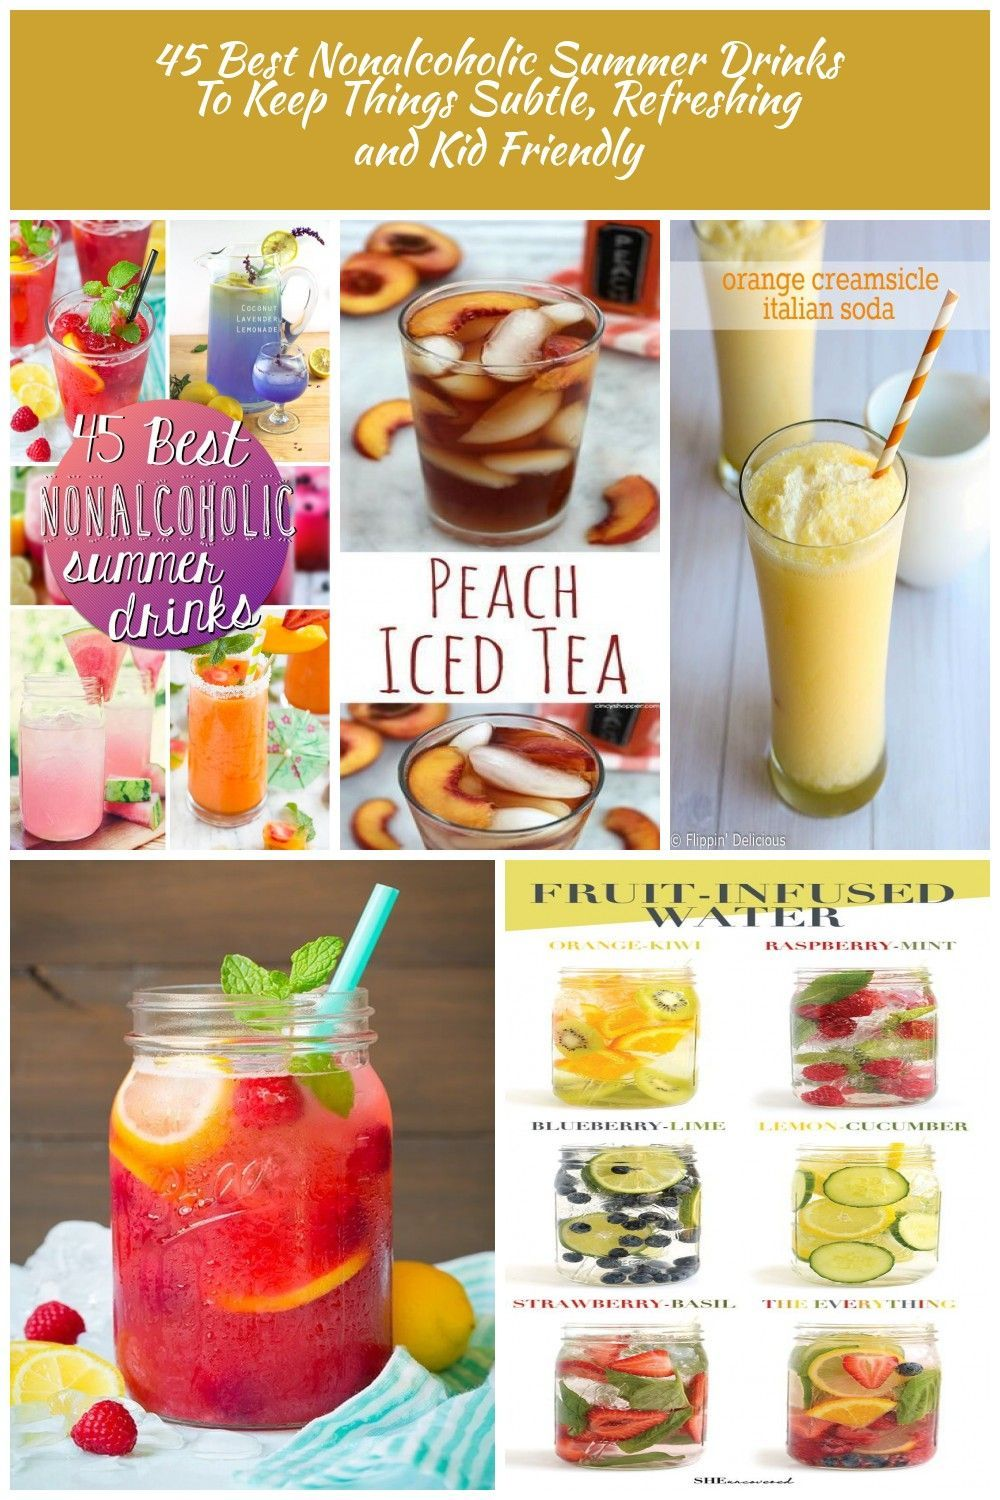 45 Best Nonalcoholic Summer Drinks #non #alcoholic #summer #drinks refreshing dr…